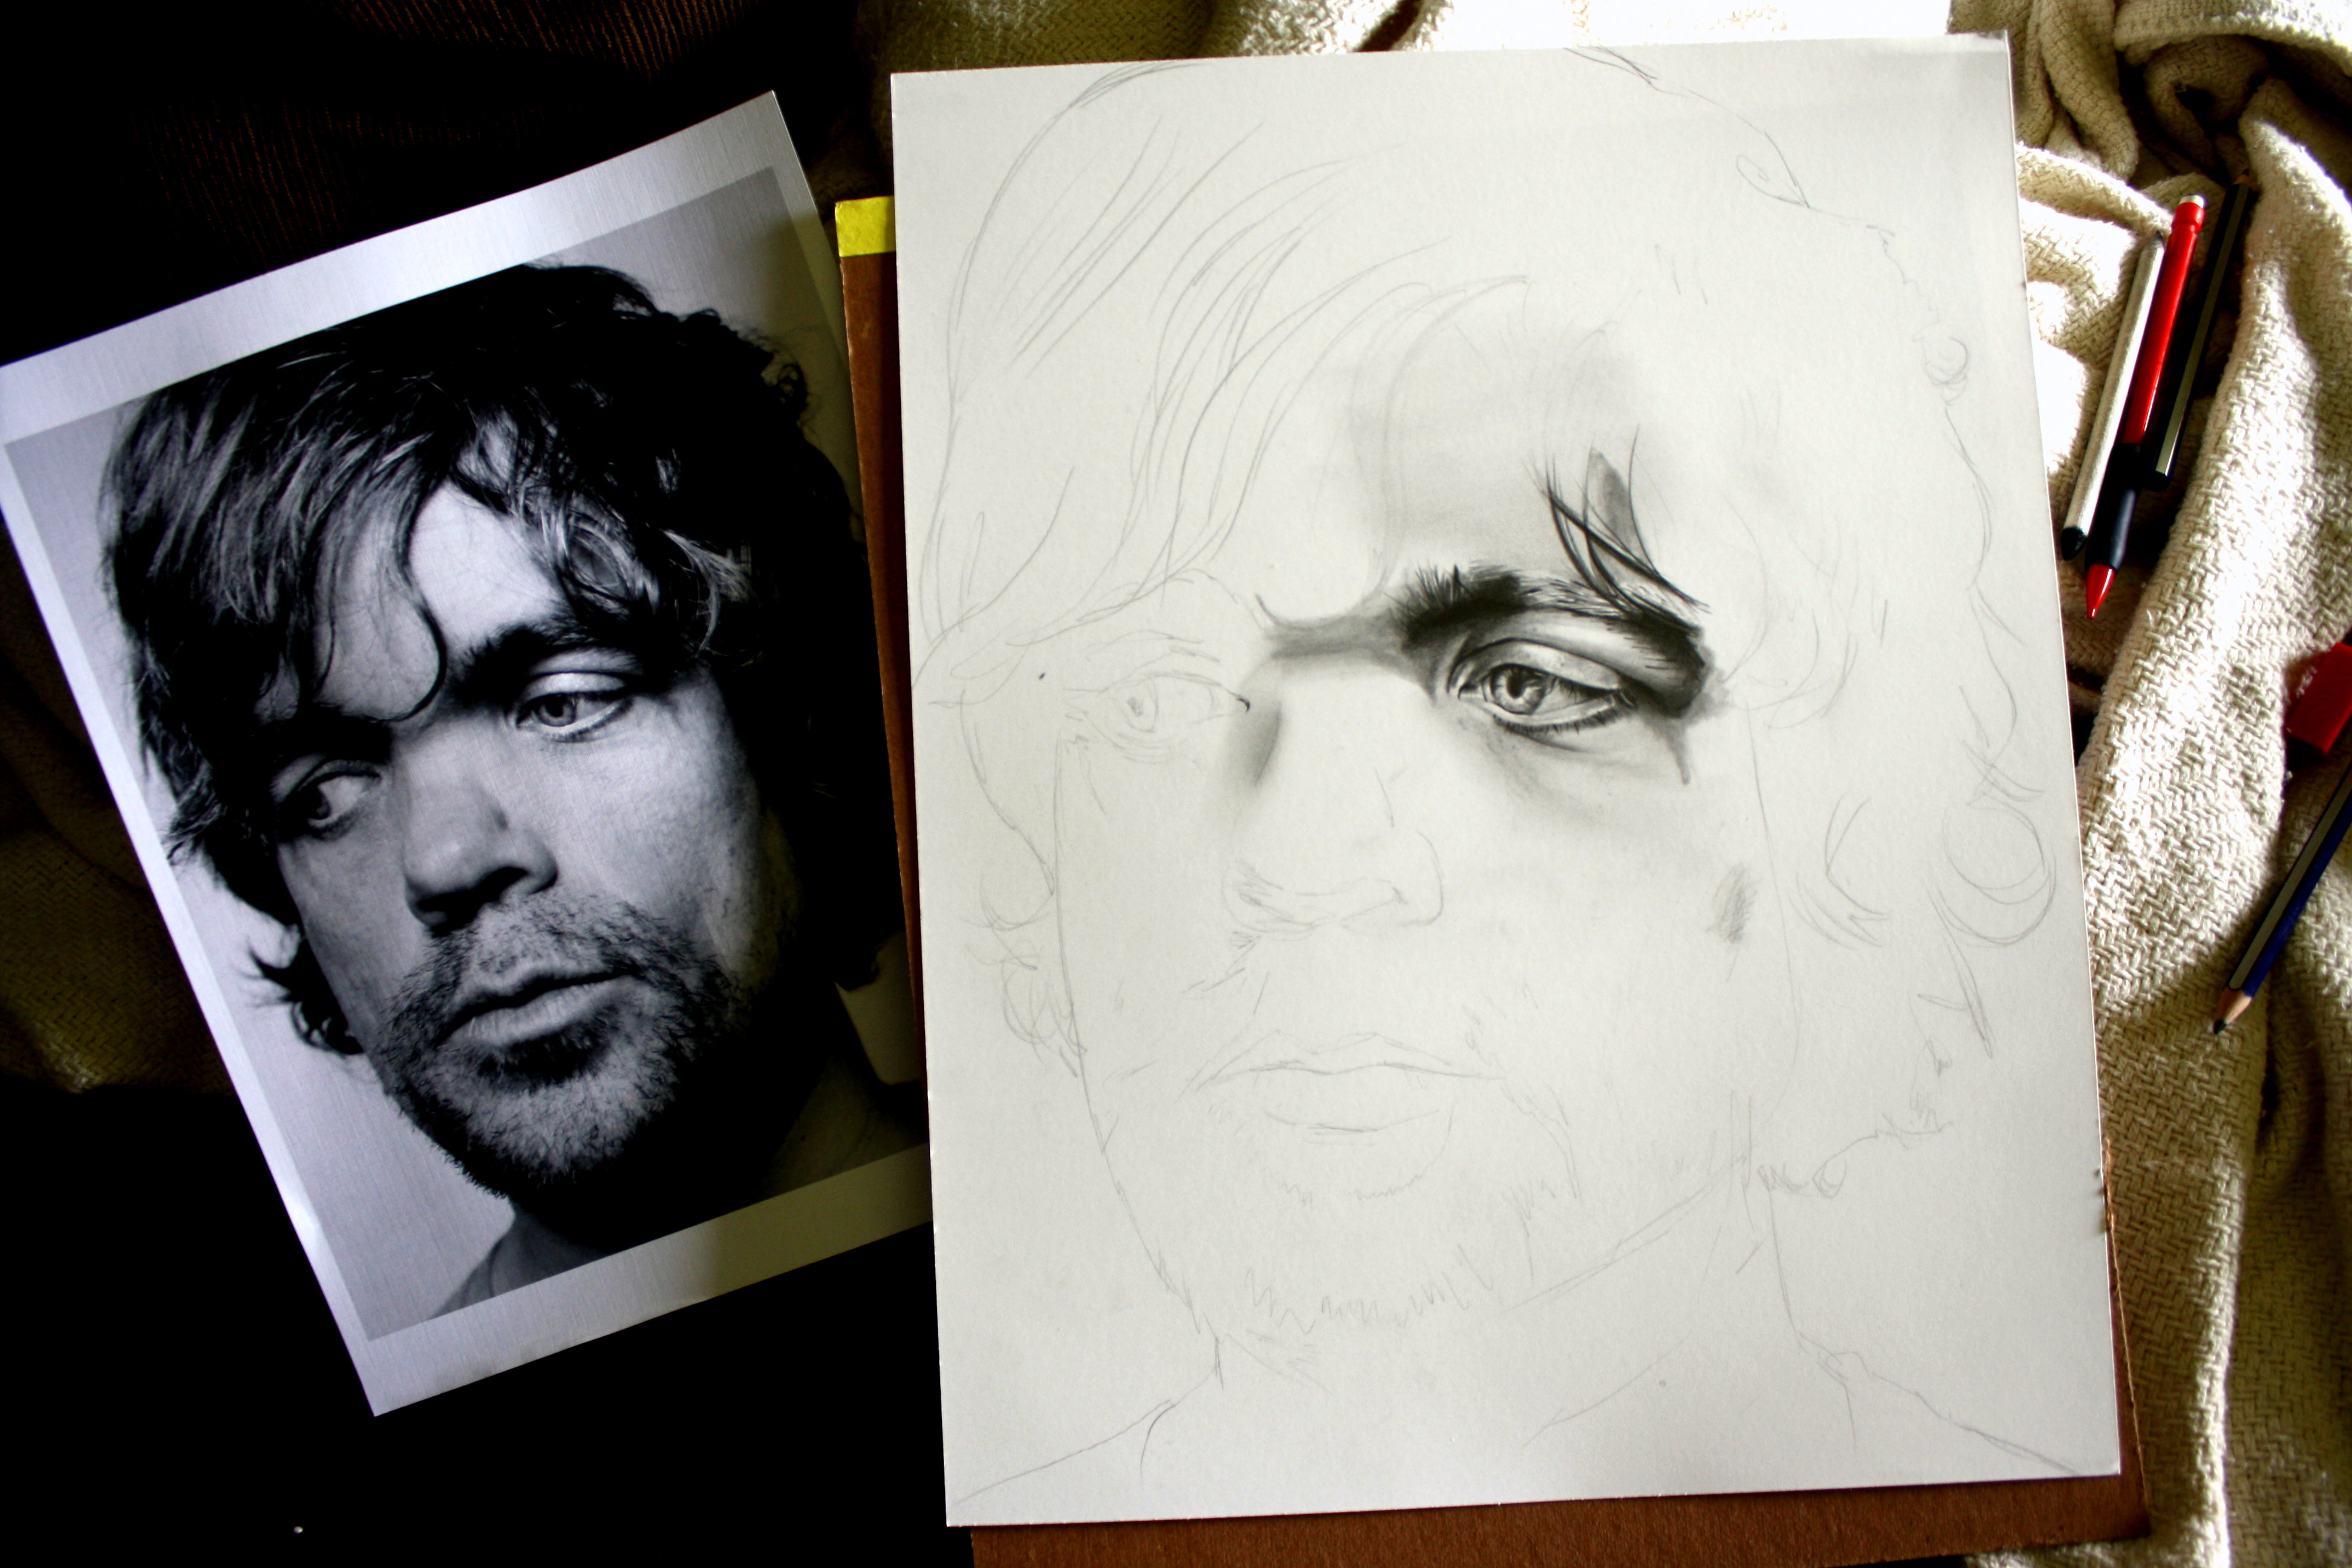 a Tyrion Lannister 's drawing. Wow, this even looks better than real pictures!